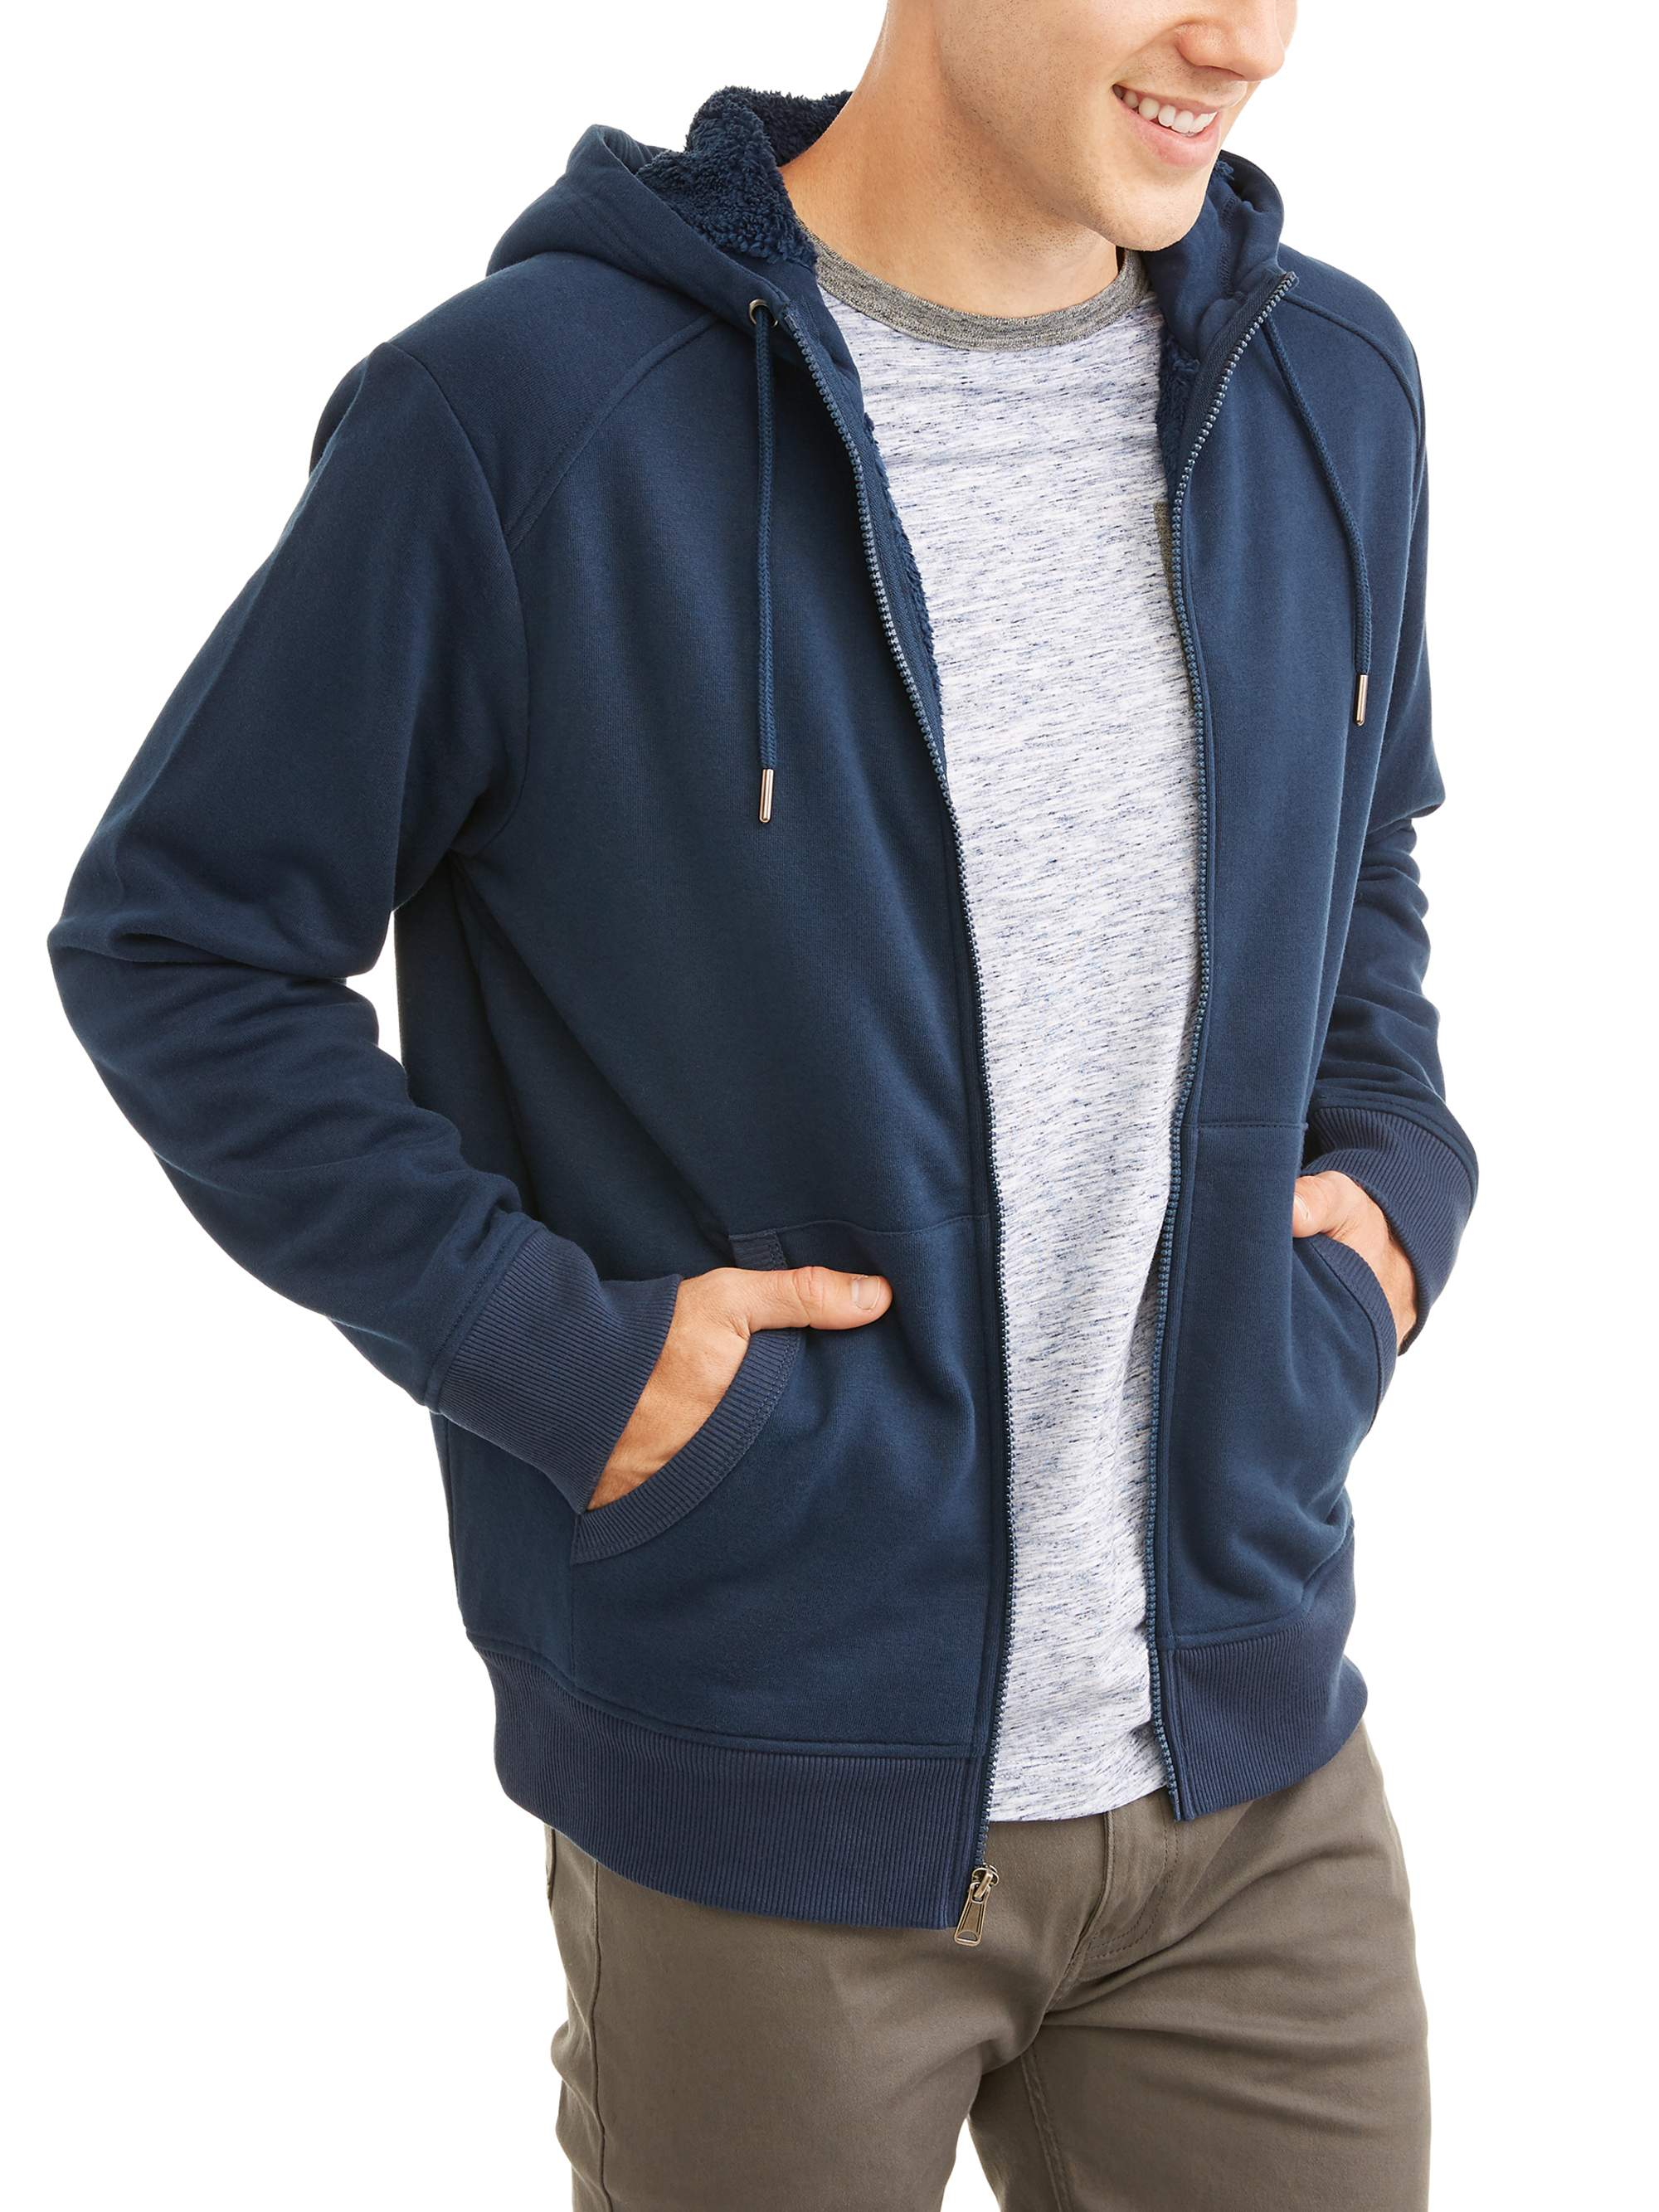 e4842556 George - George Men's Sherpa Hoodie Up To Size 5Xl - Walmart.com